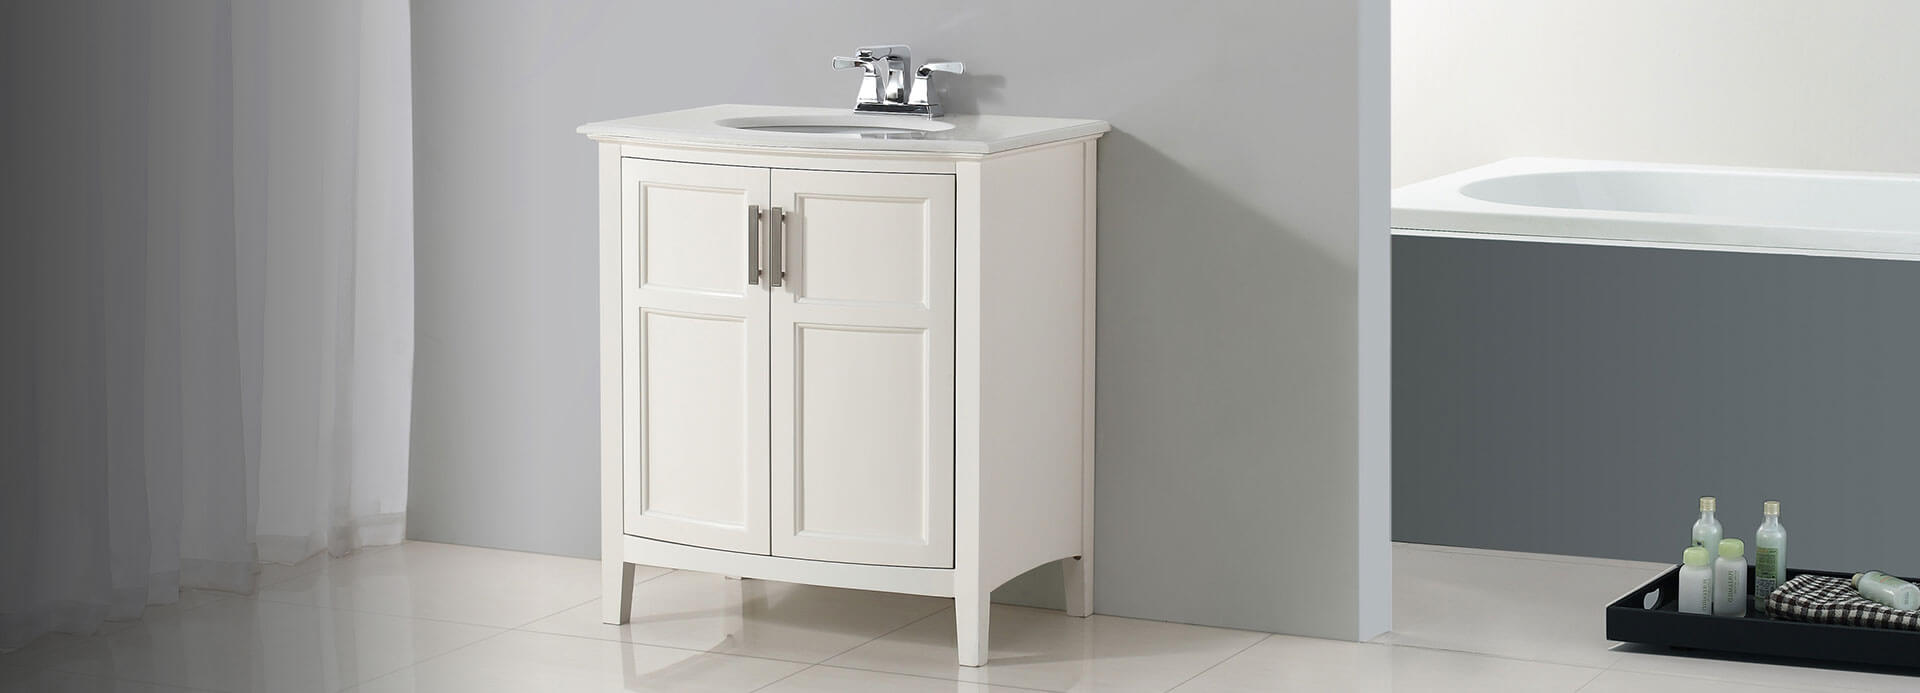 Genial Top Rated Bathroom Cabinets